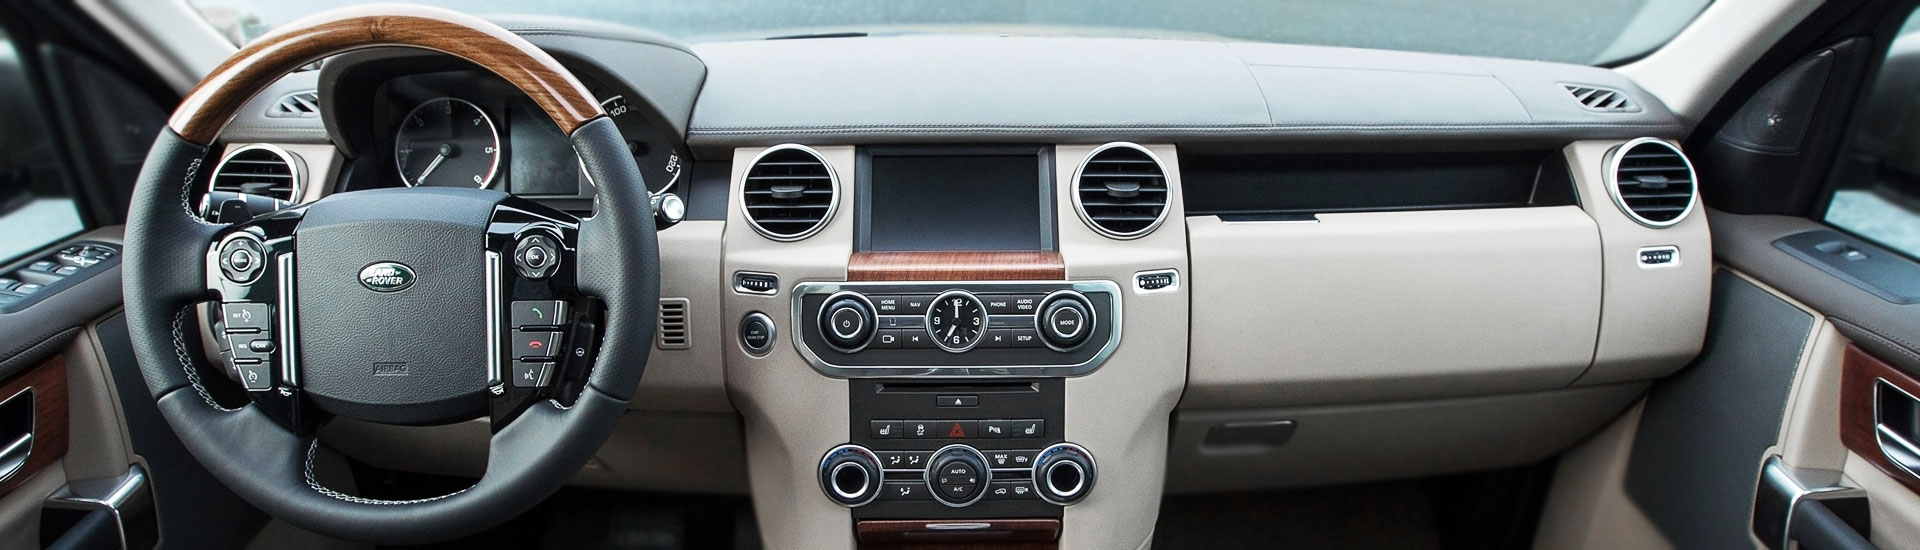 2009 Land Rover Range Rover Custom Dash Kits